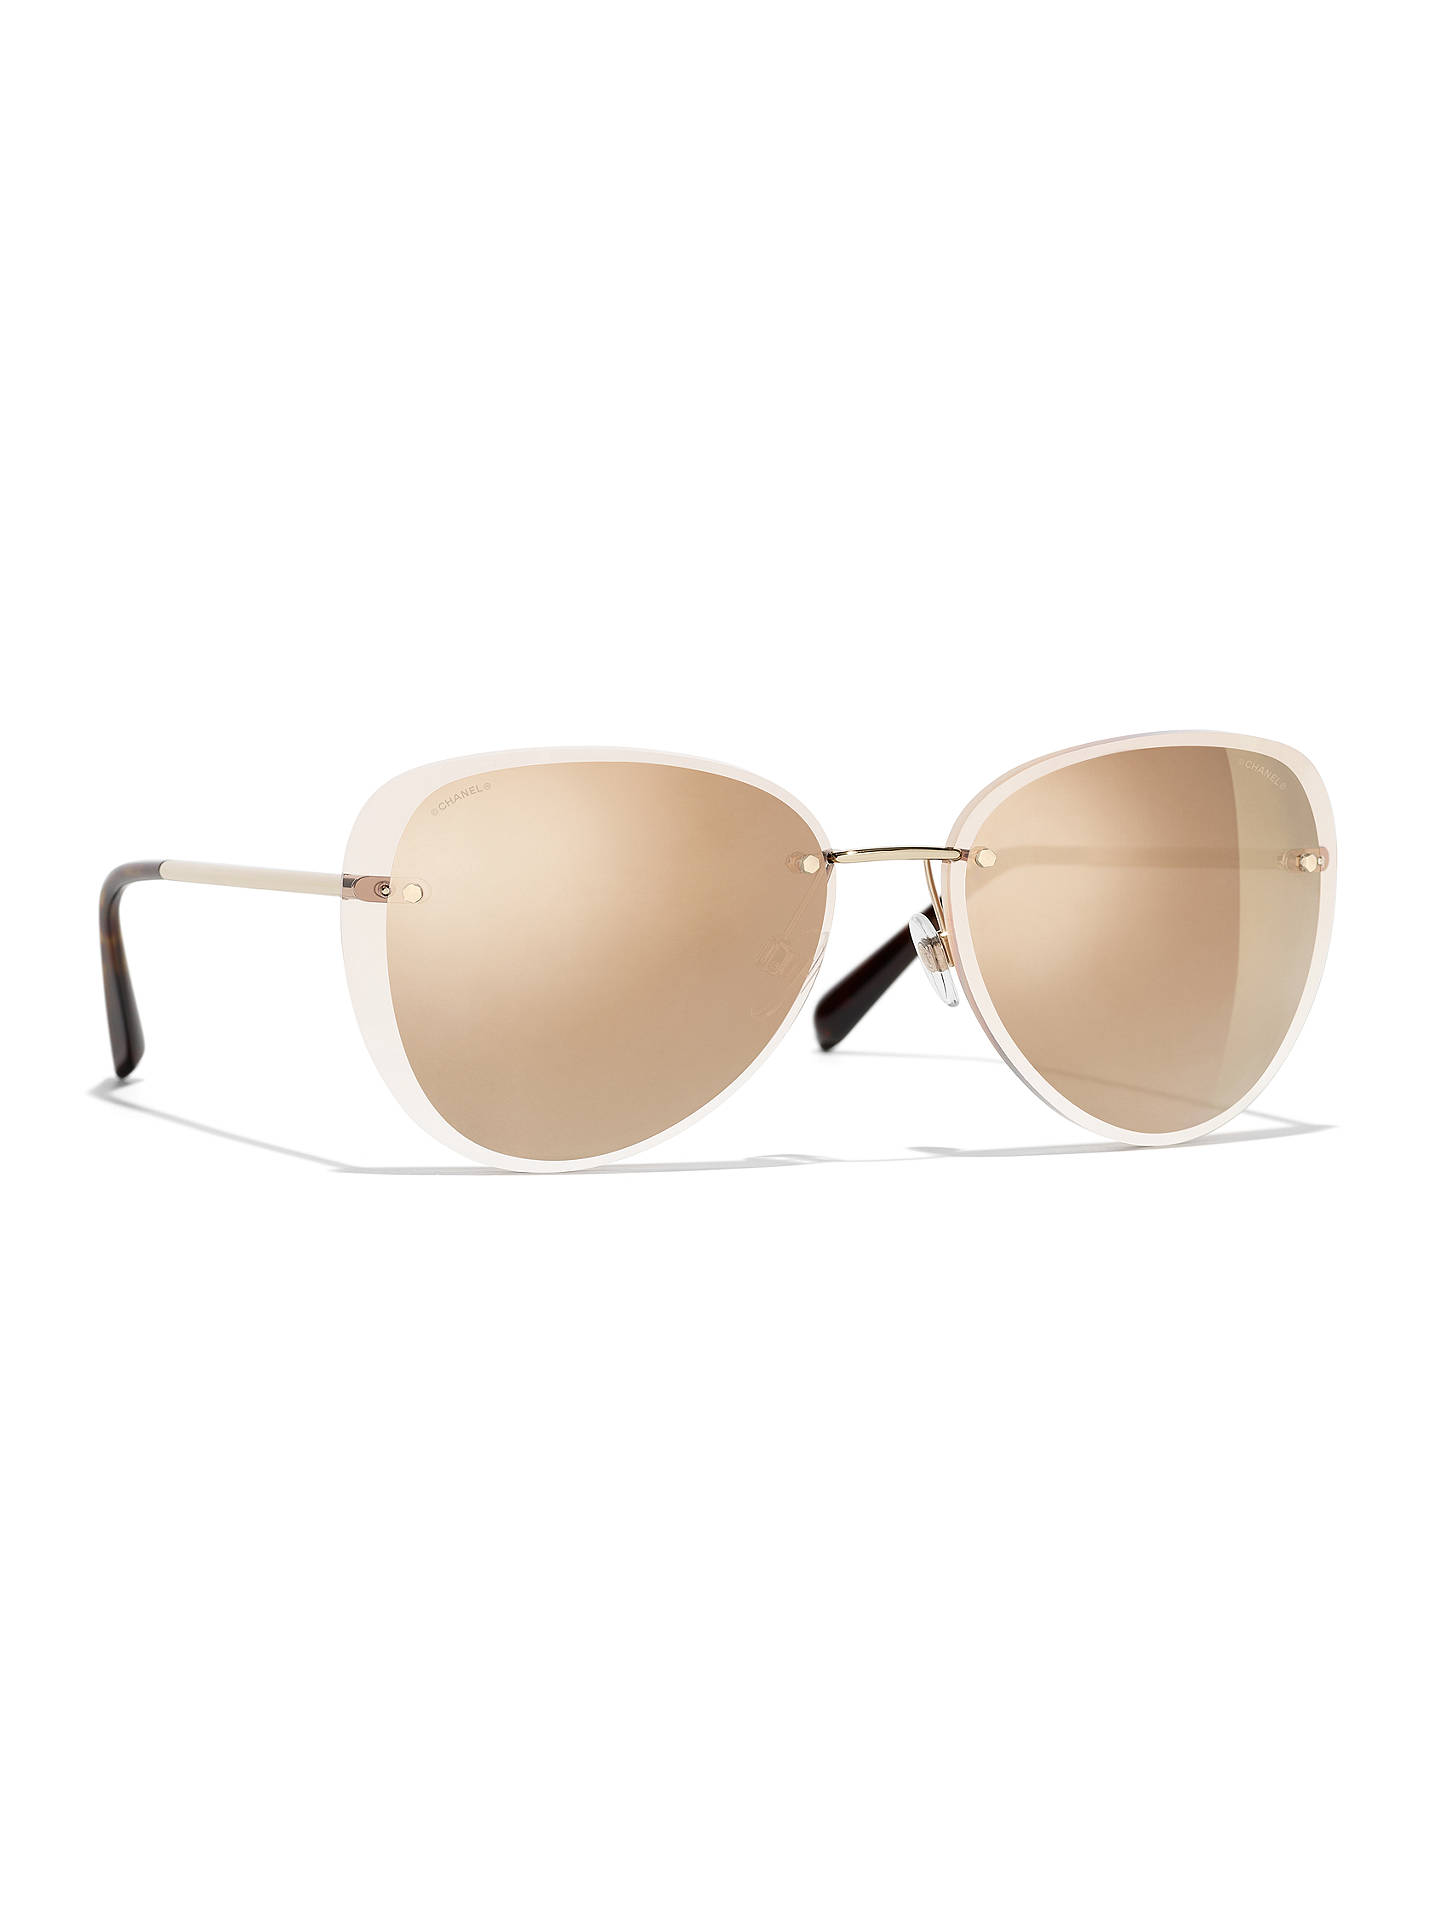 fdd996fa08 BuyCHANEL Pilot Sunglasses CH4239 Gold Brown Gradient Online at  johnlewis.com ...